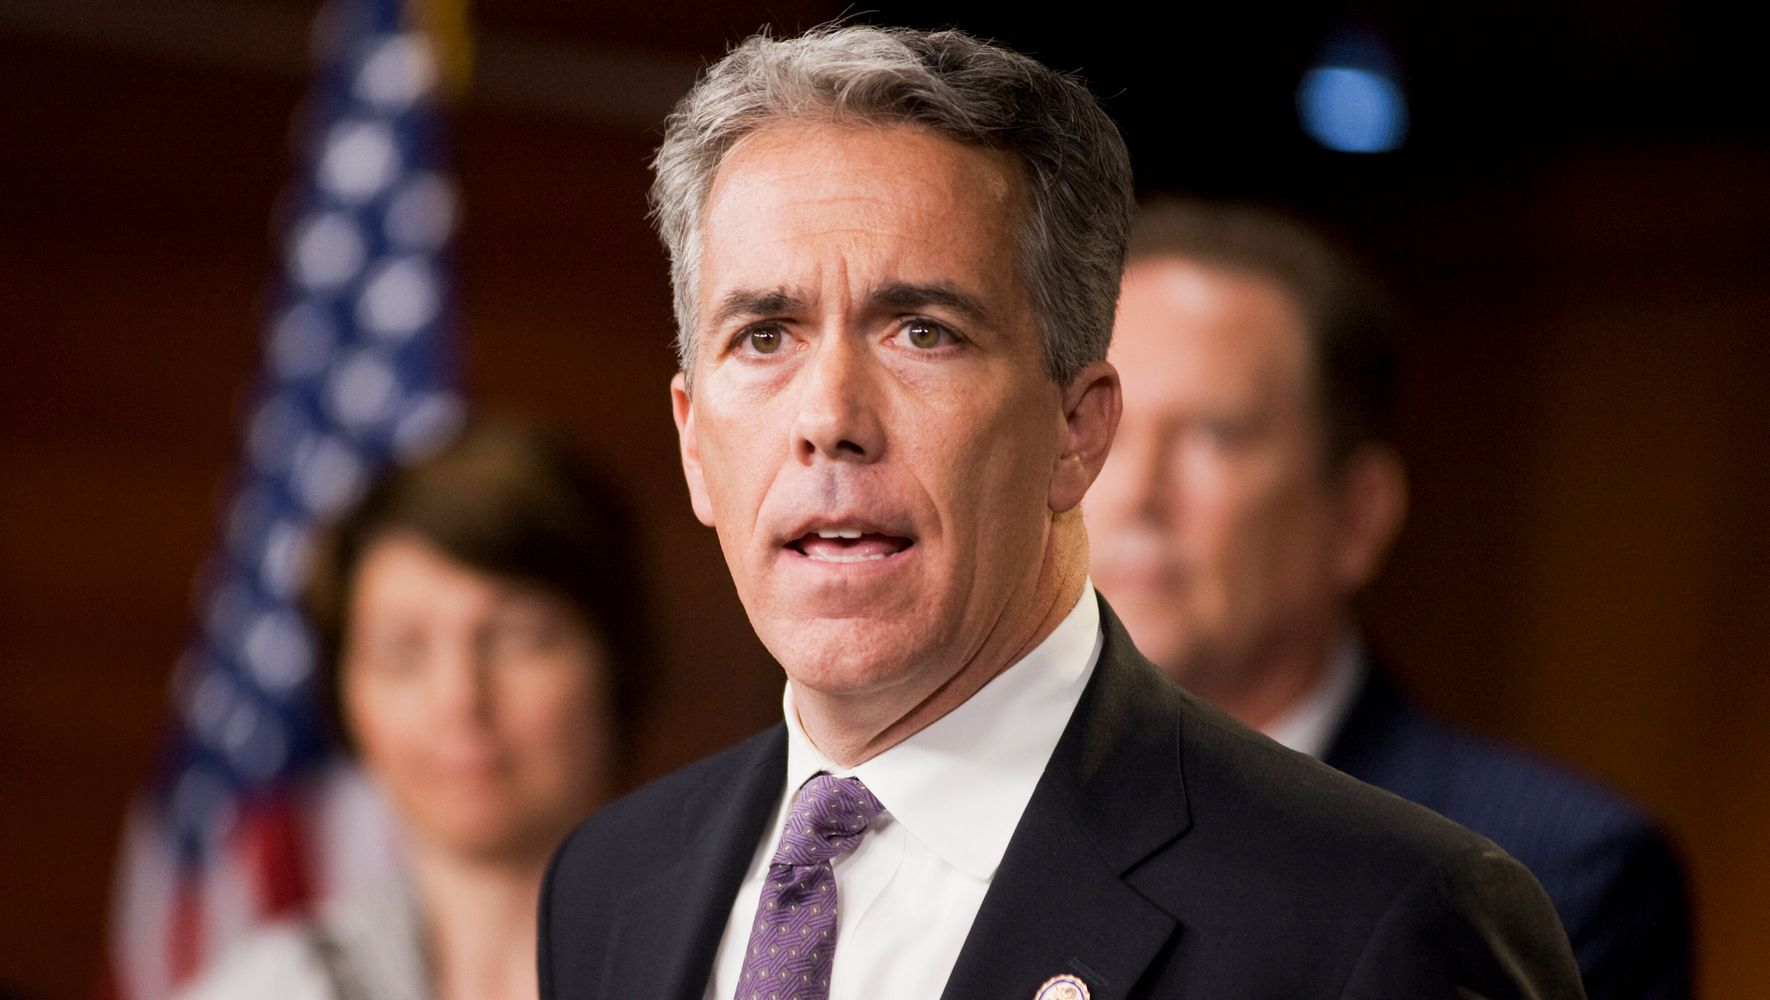 Former Illinois Rep. Joe Walsh To Challenge Trump In GOP Primary